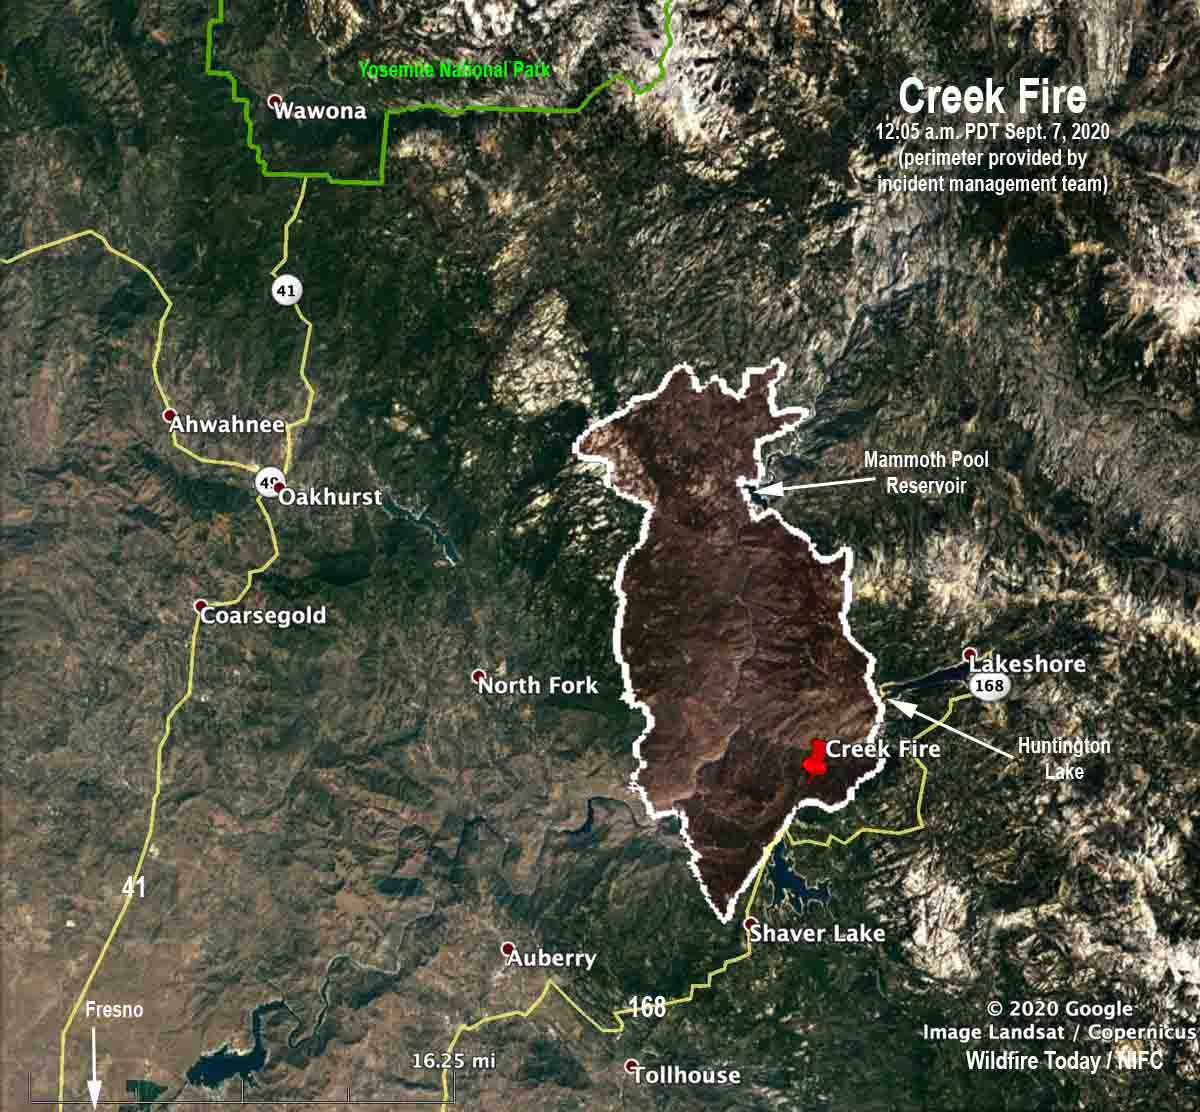 Map of the Creek Fire 12:05 a.m. PDT Sept. 7, 2020